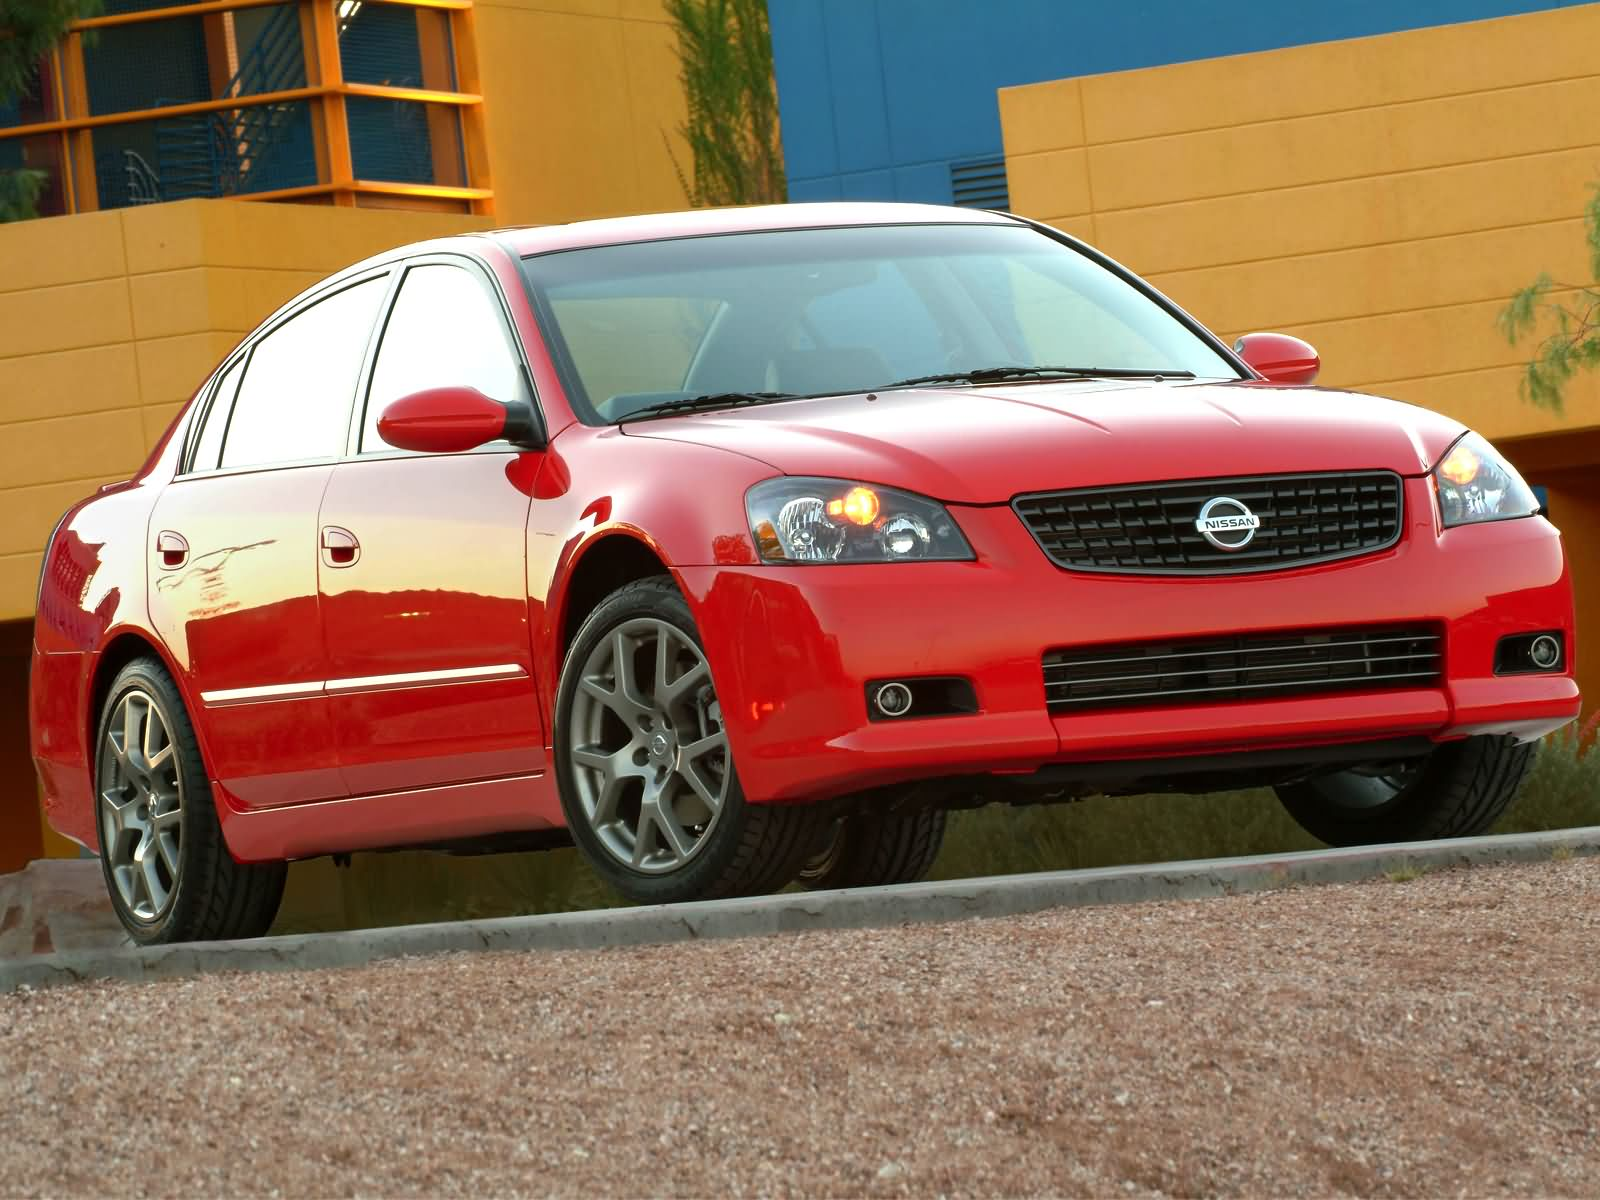 Nissan Altima photo 15621